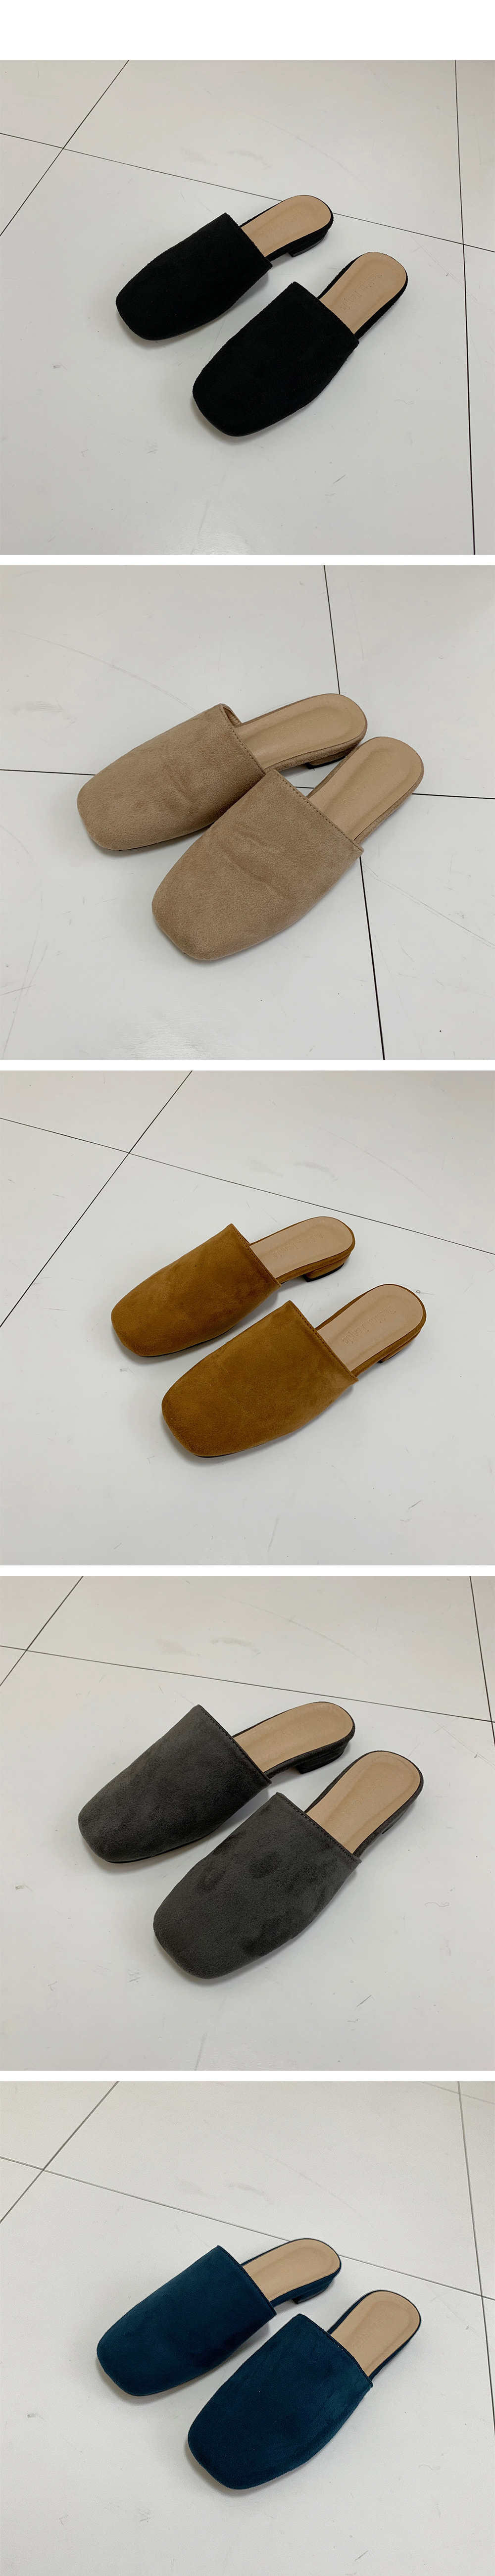 Leco suede blower